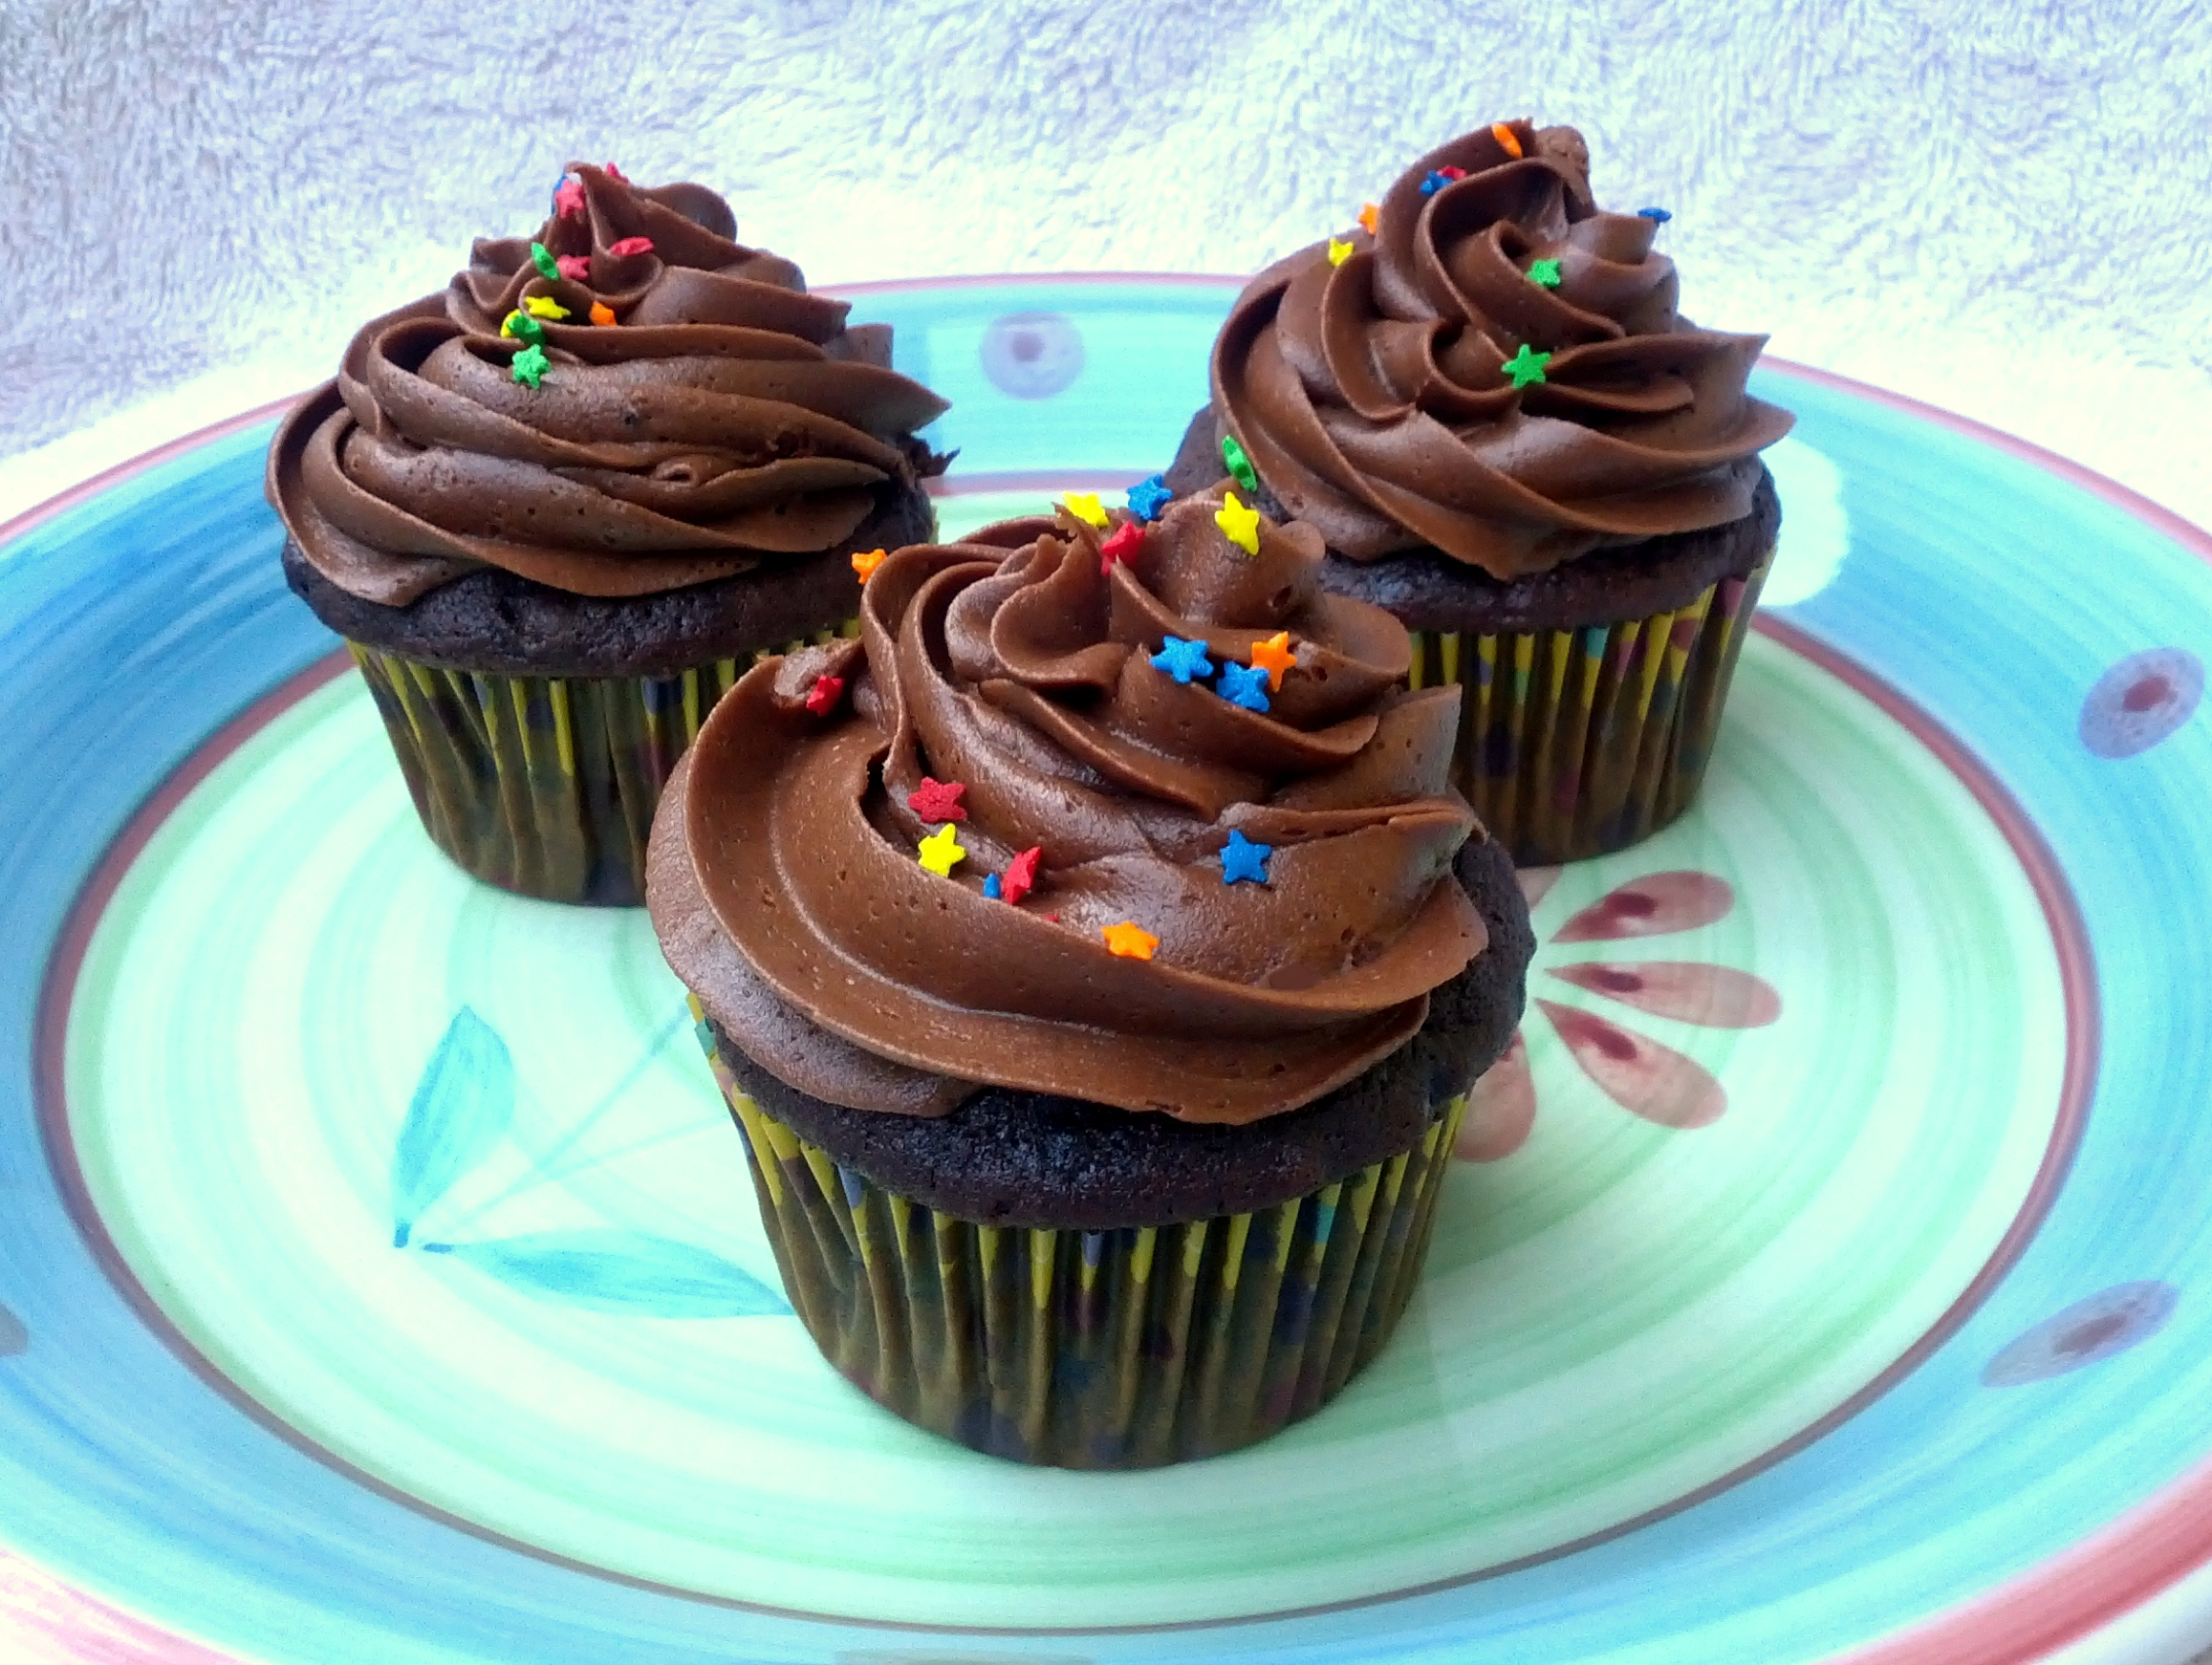 Different Cake Icing Recipes: Easy Chocolate Buttercream Frosting